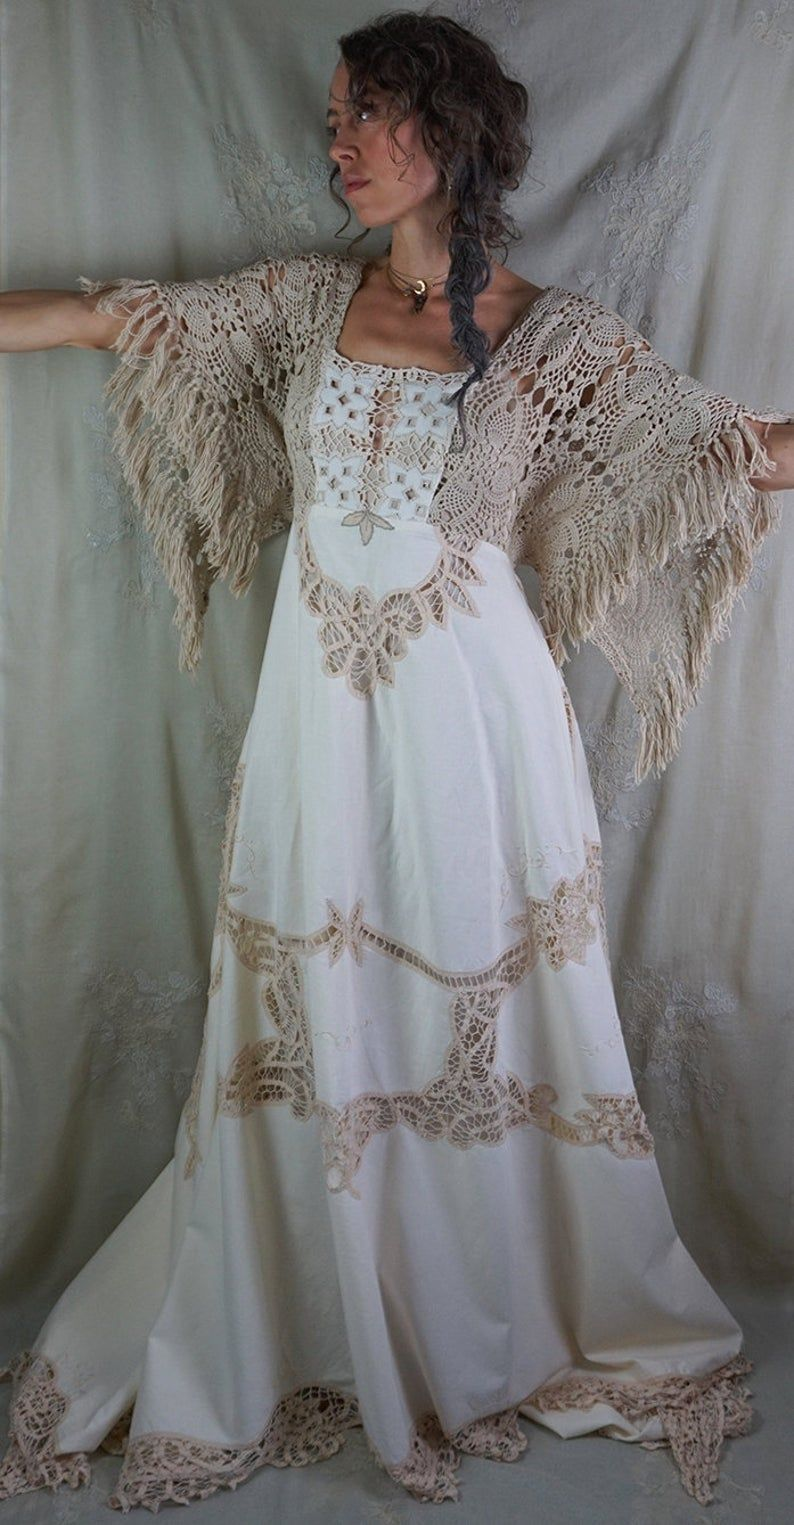 RESERVED Equinox Gown... wedding dress photoshoot rustic